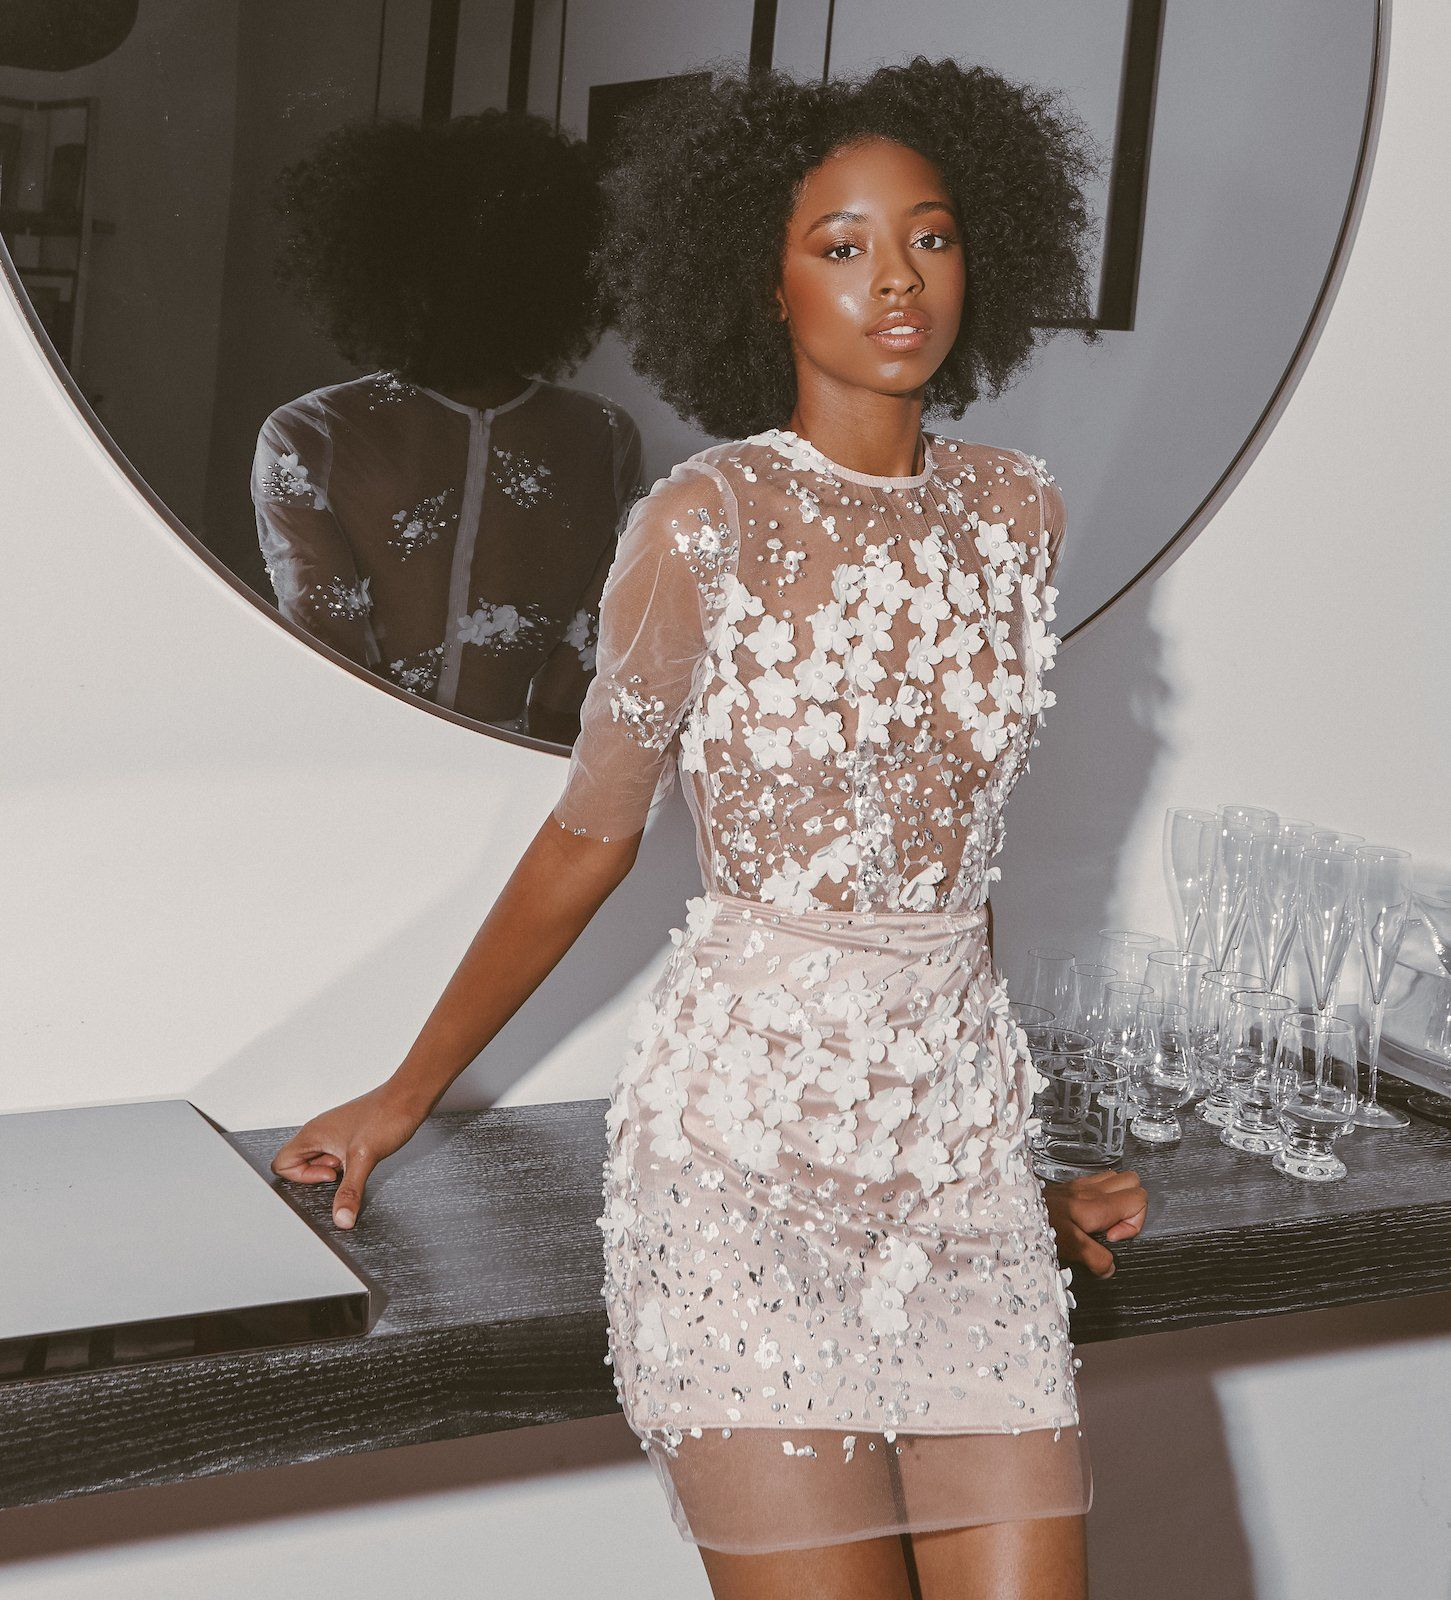 Best Engagement Party Dresses - The White Files #dressesforengagementparty